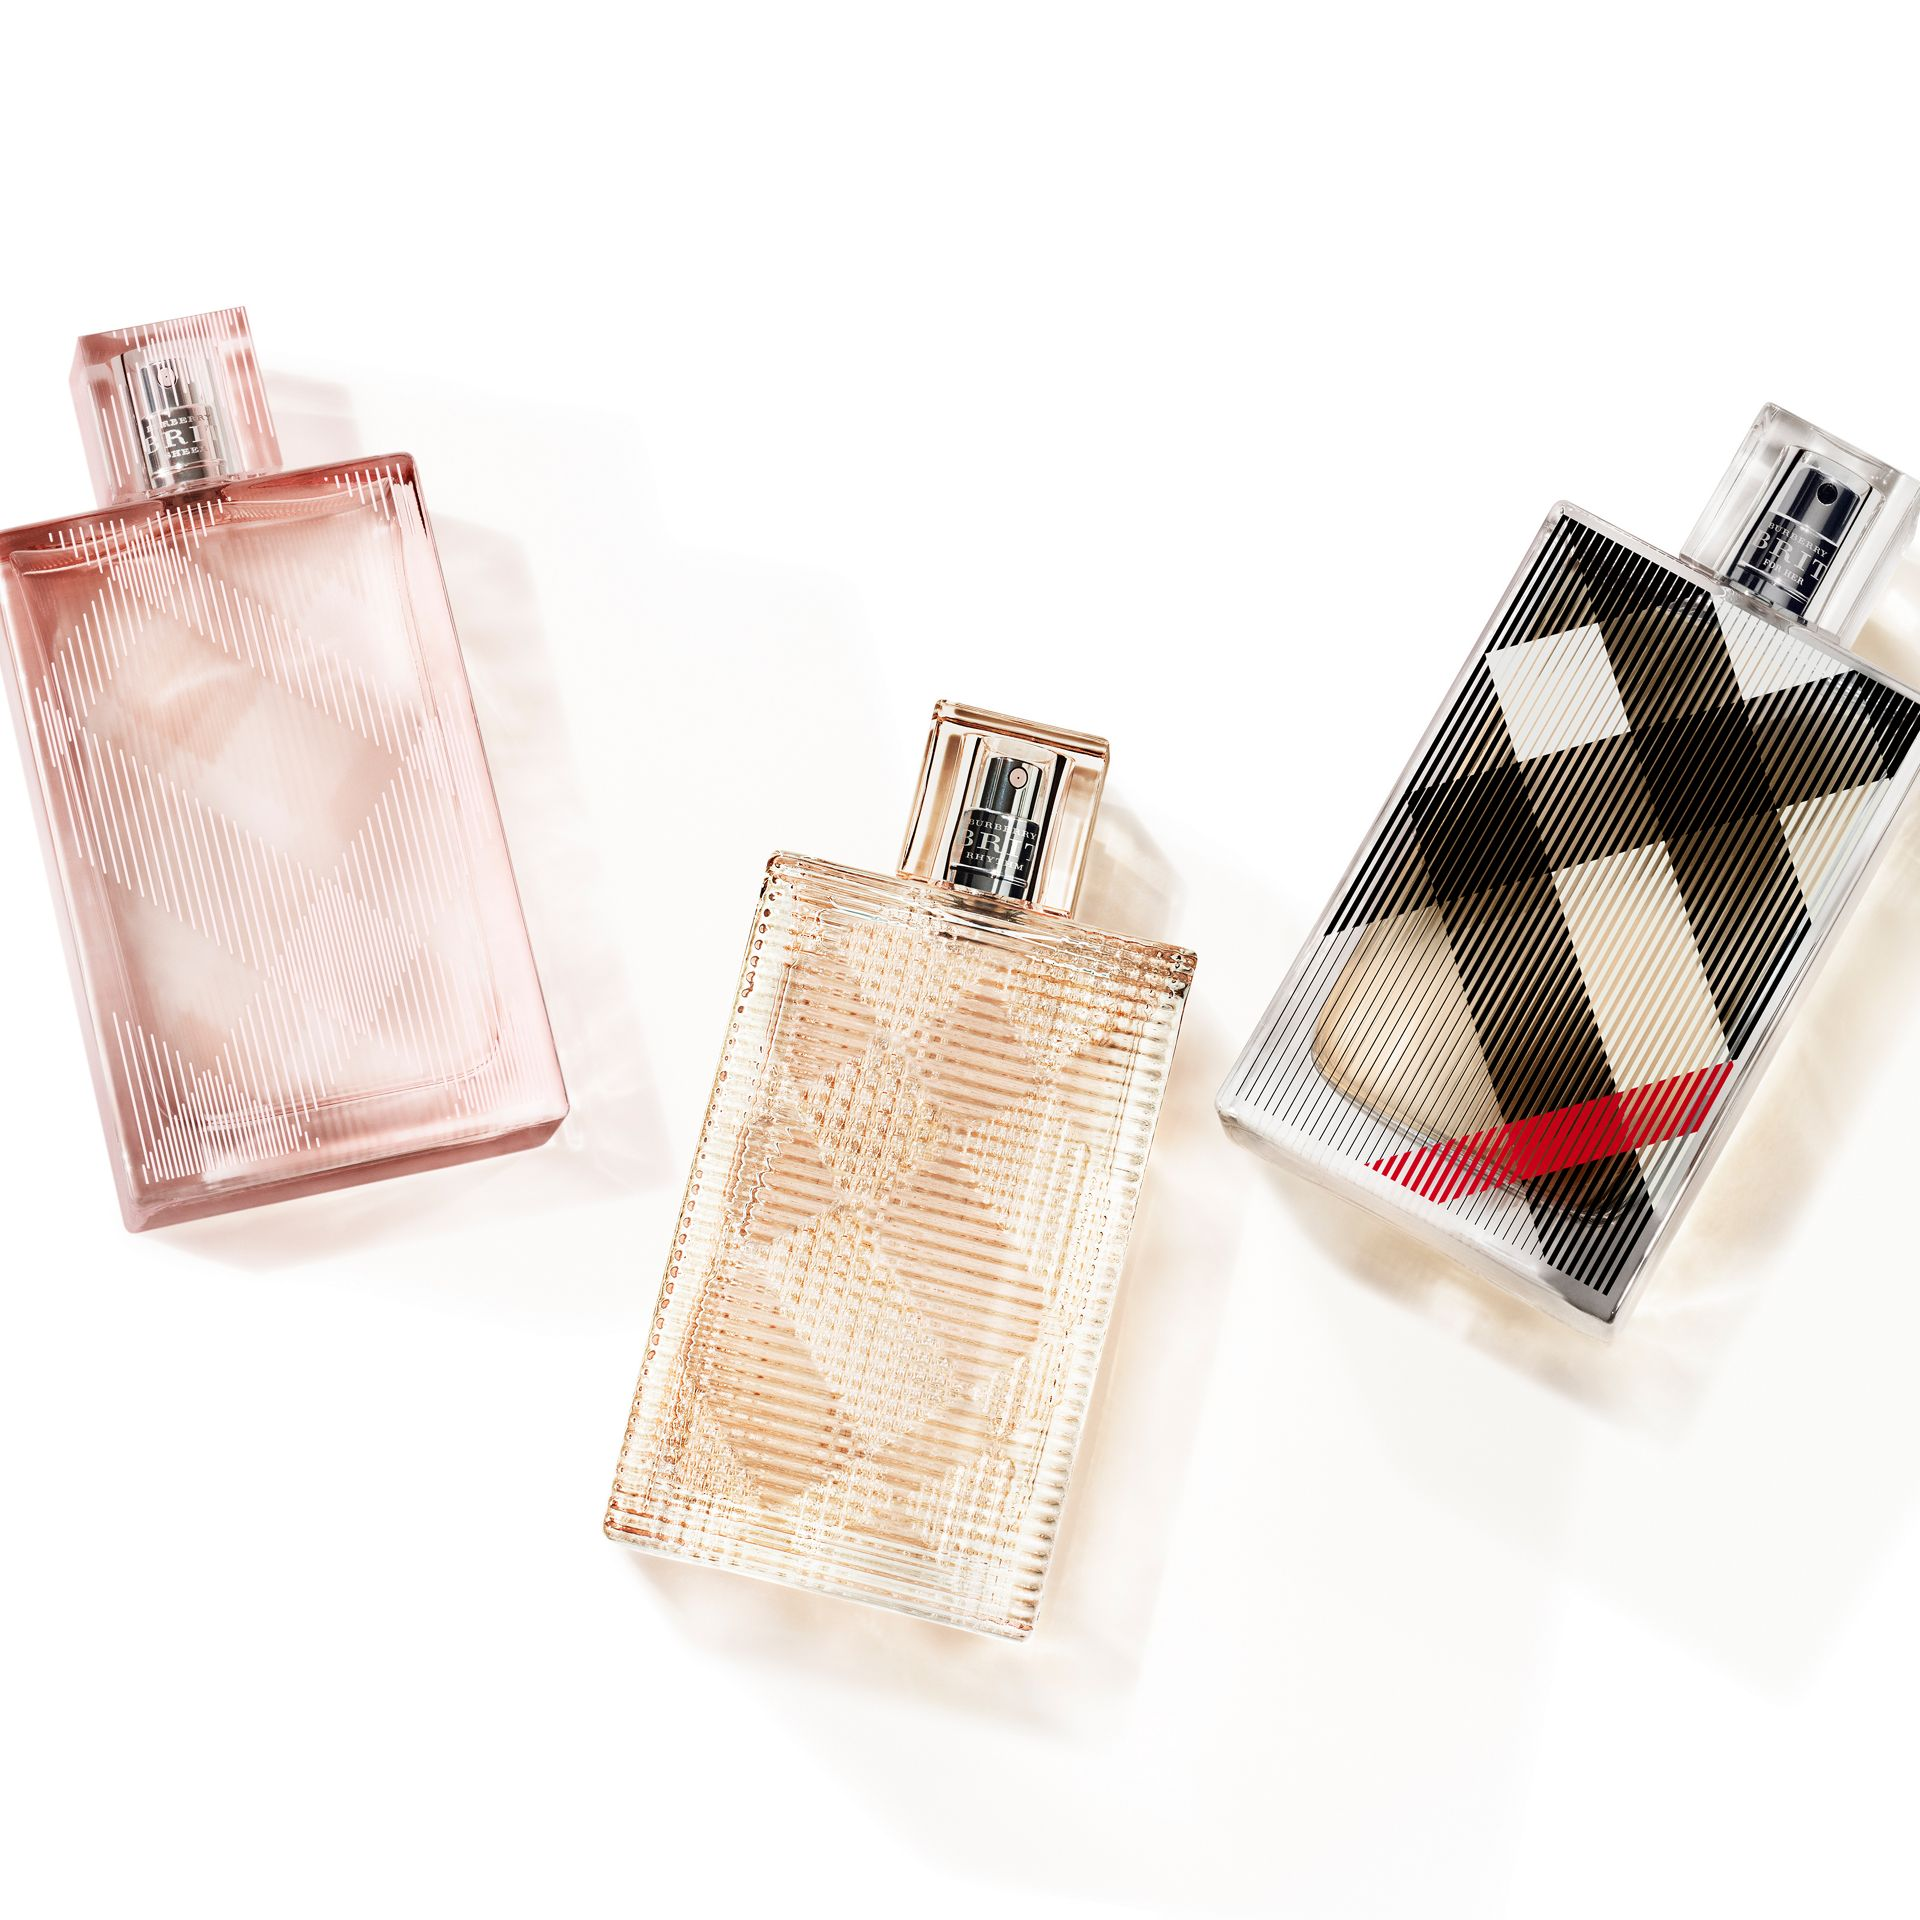 Burberry Brit For Her Eau de Toilette 50 ml - Galerie-Bild 3